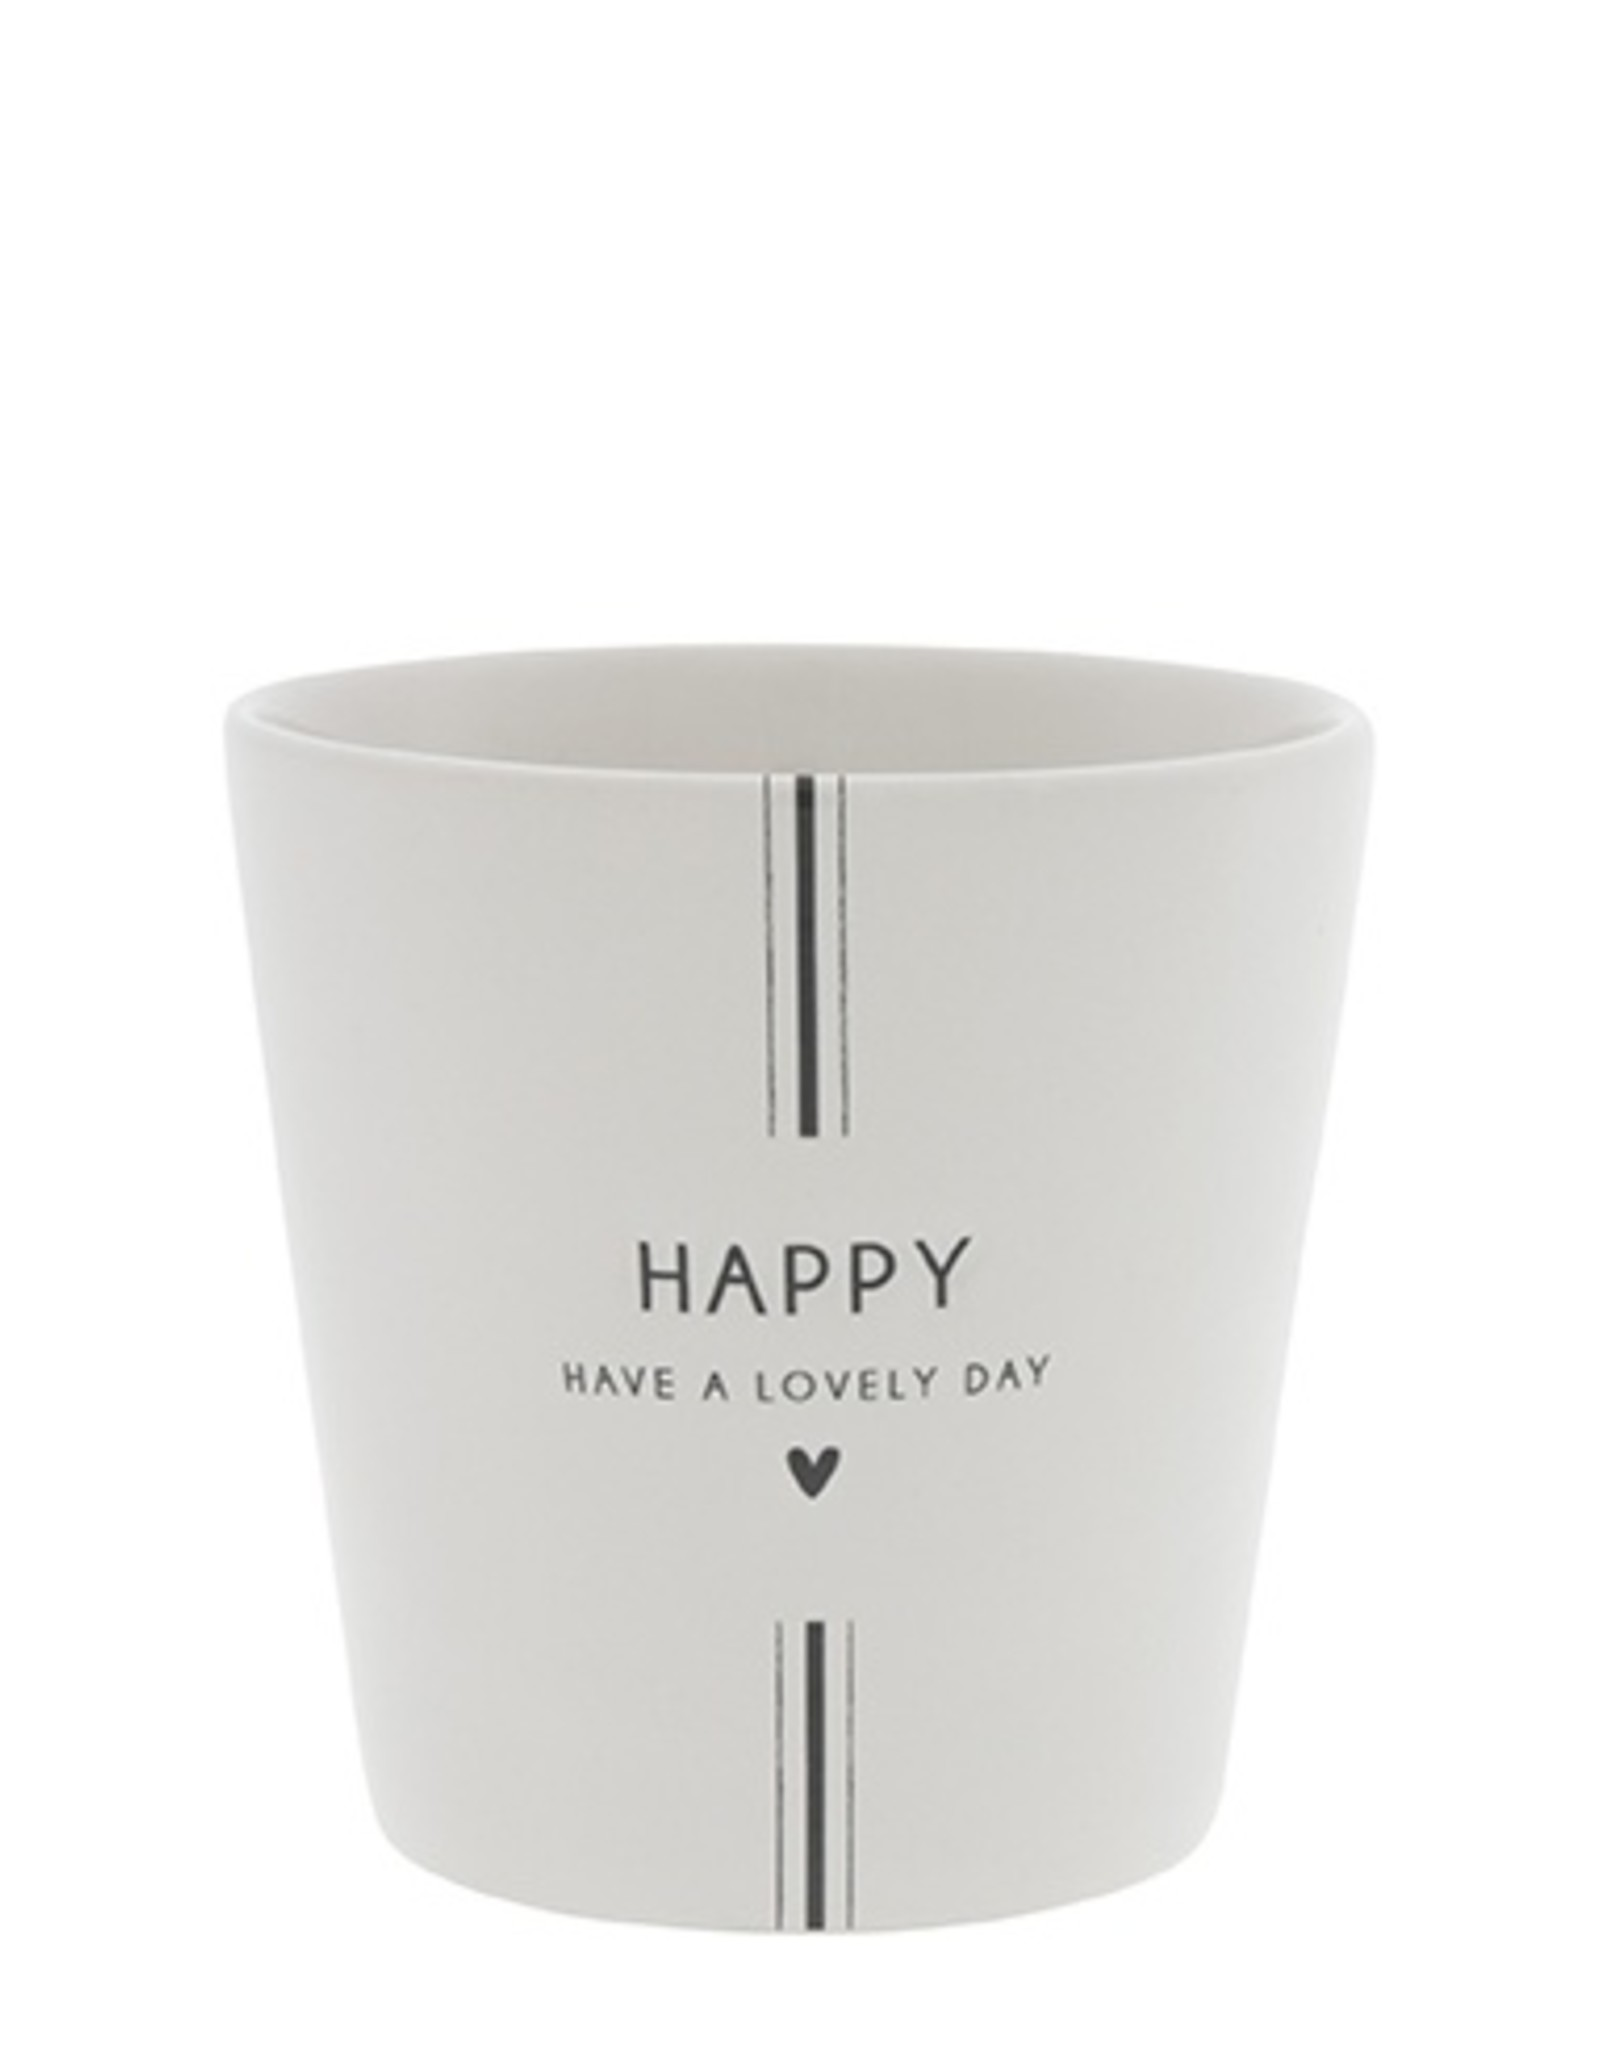 Bastion Collections Cup White   Have a Lovely Day   Bastion Collections